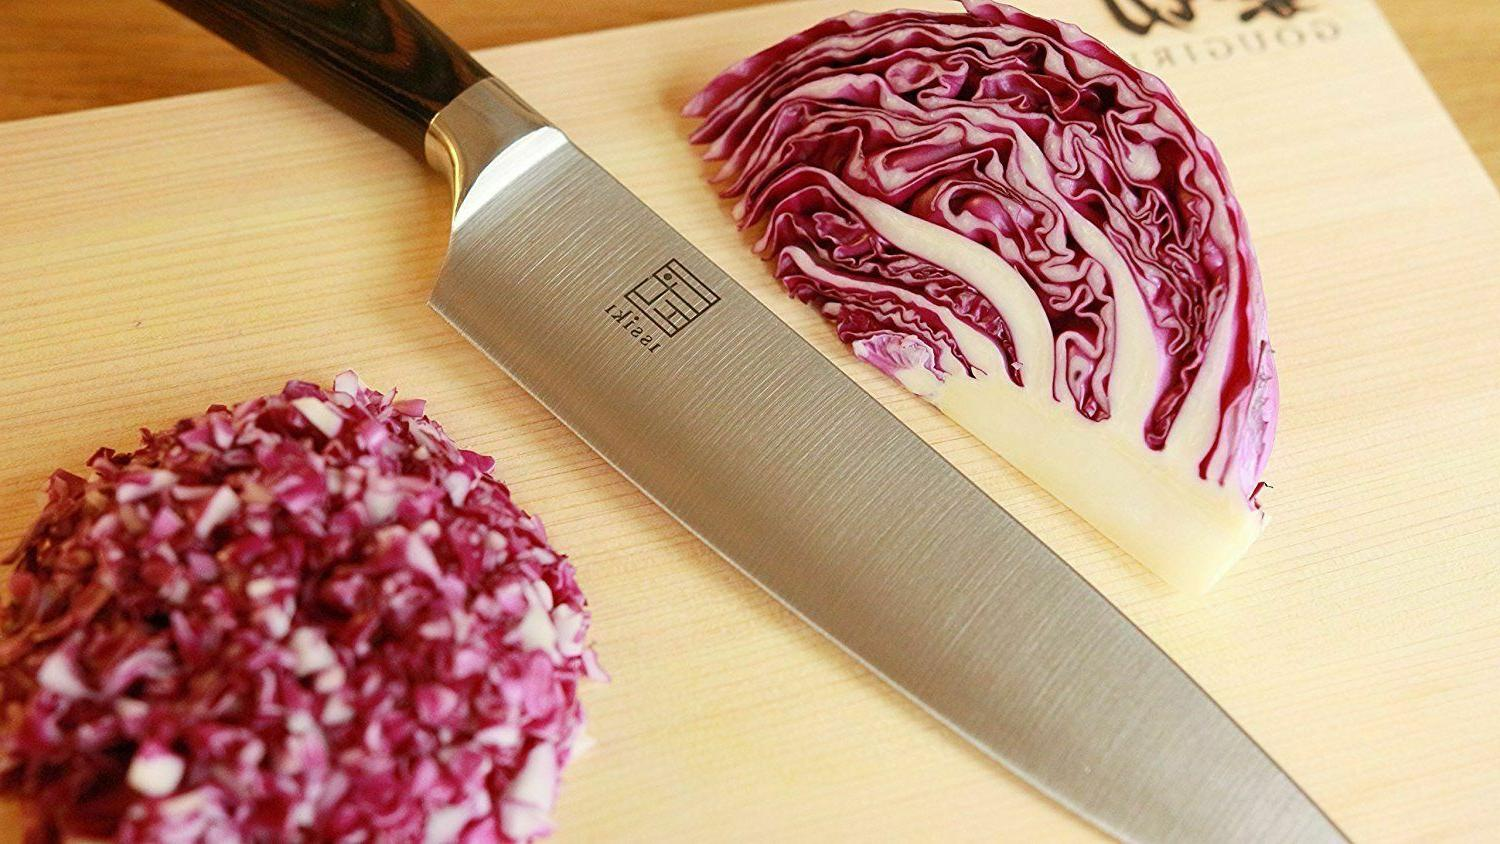 ISSIKI Professional Chef Sharp High Carbon Stainless